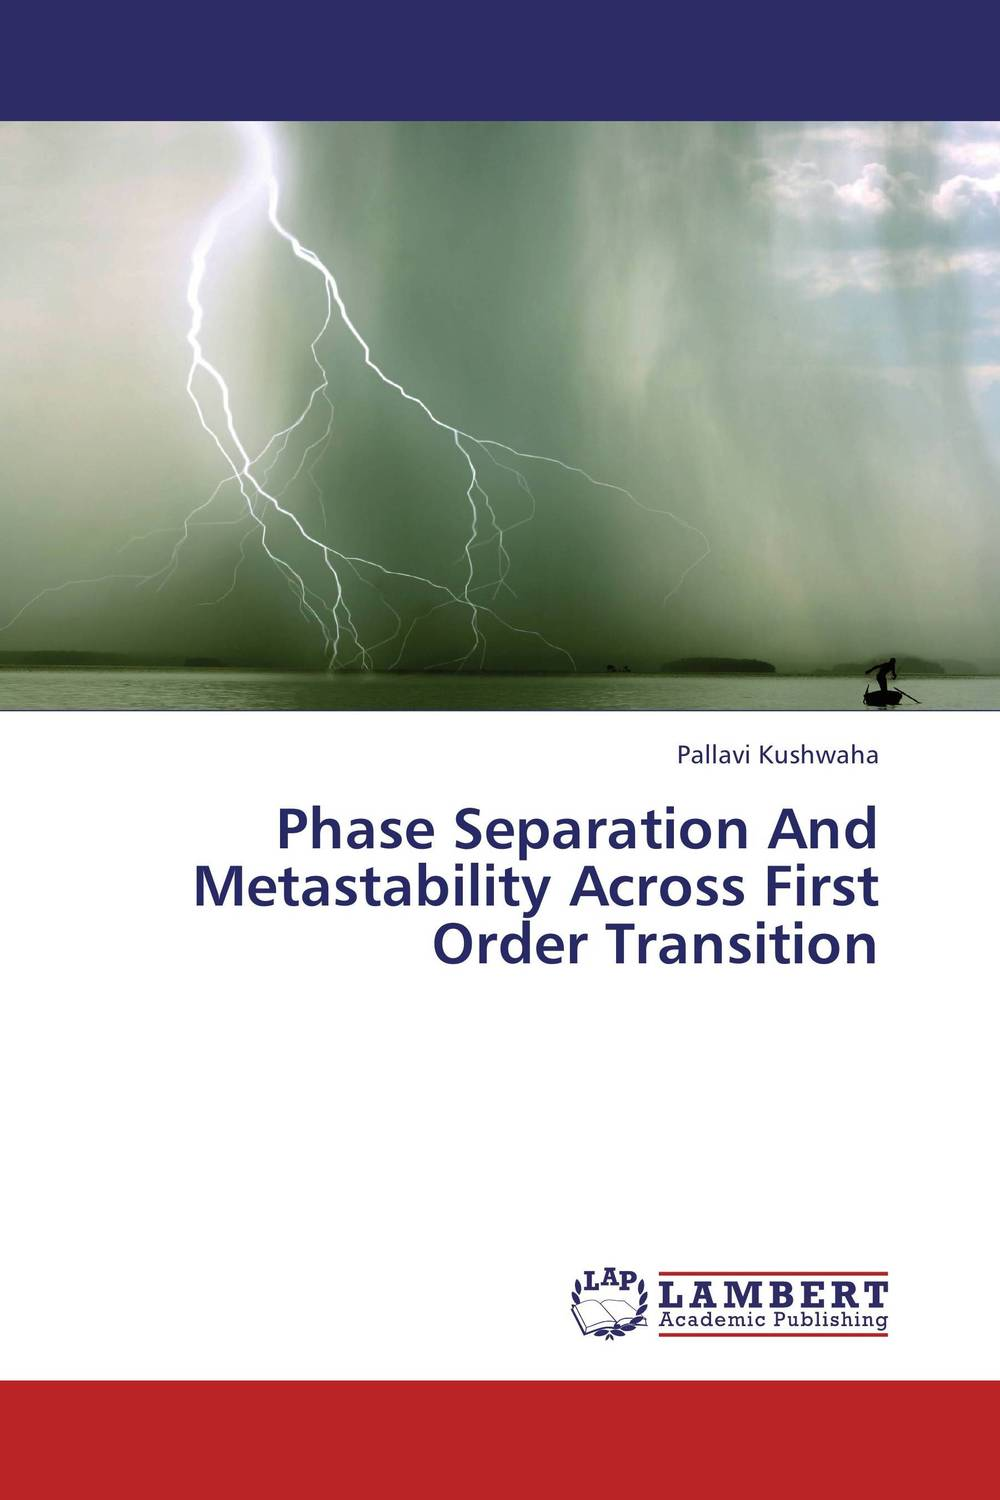 Phase Separation And Metastability Across First Order Transition